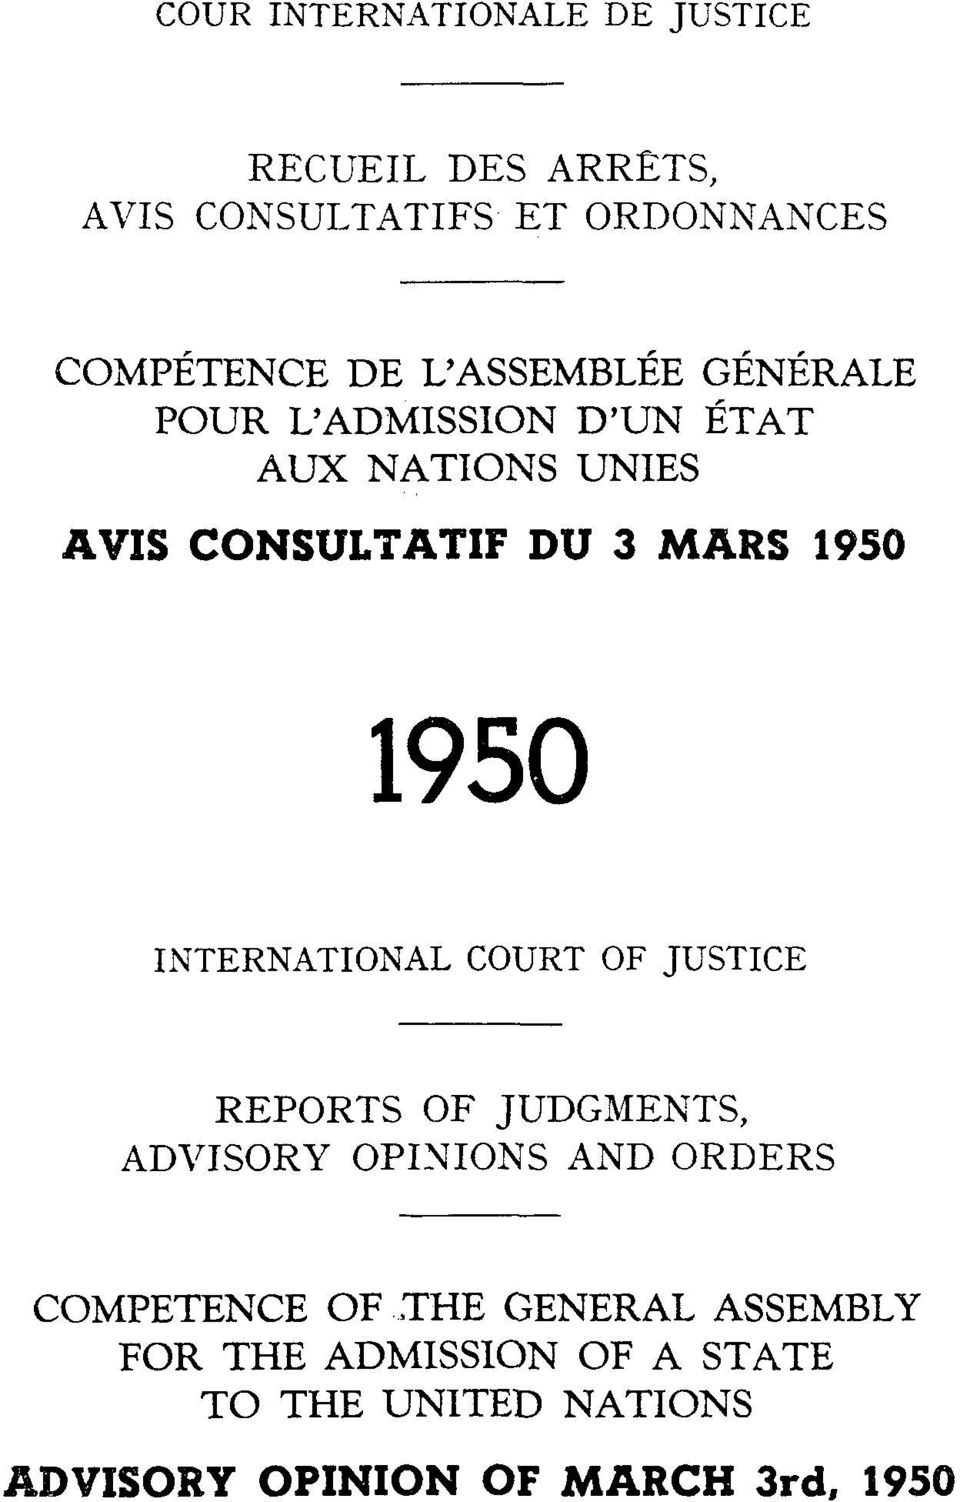 INTERNATIONAL COURT OF JUSTICE REPORTS OF JUDGMENTS, ADTTISORY OPINIONS AND ORDERS COMPETENCE